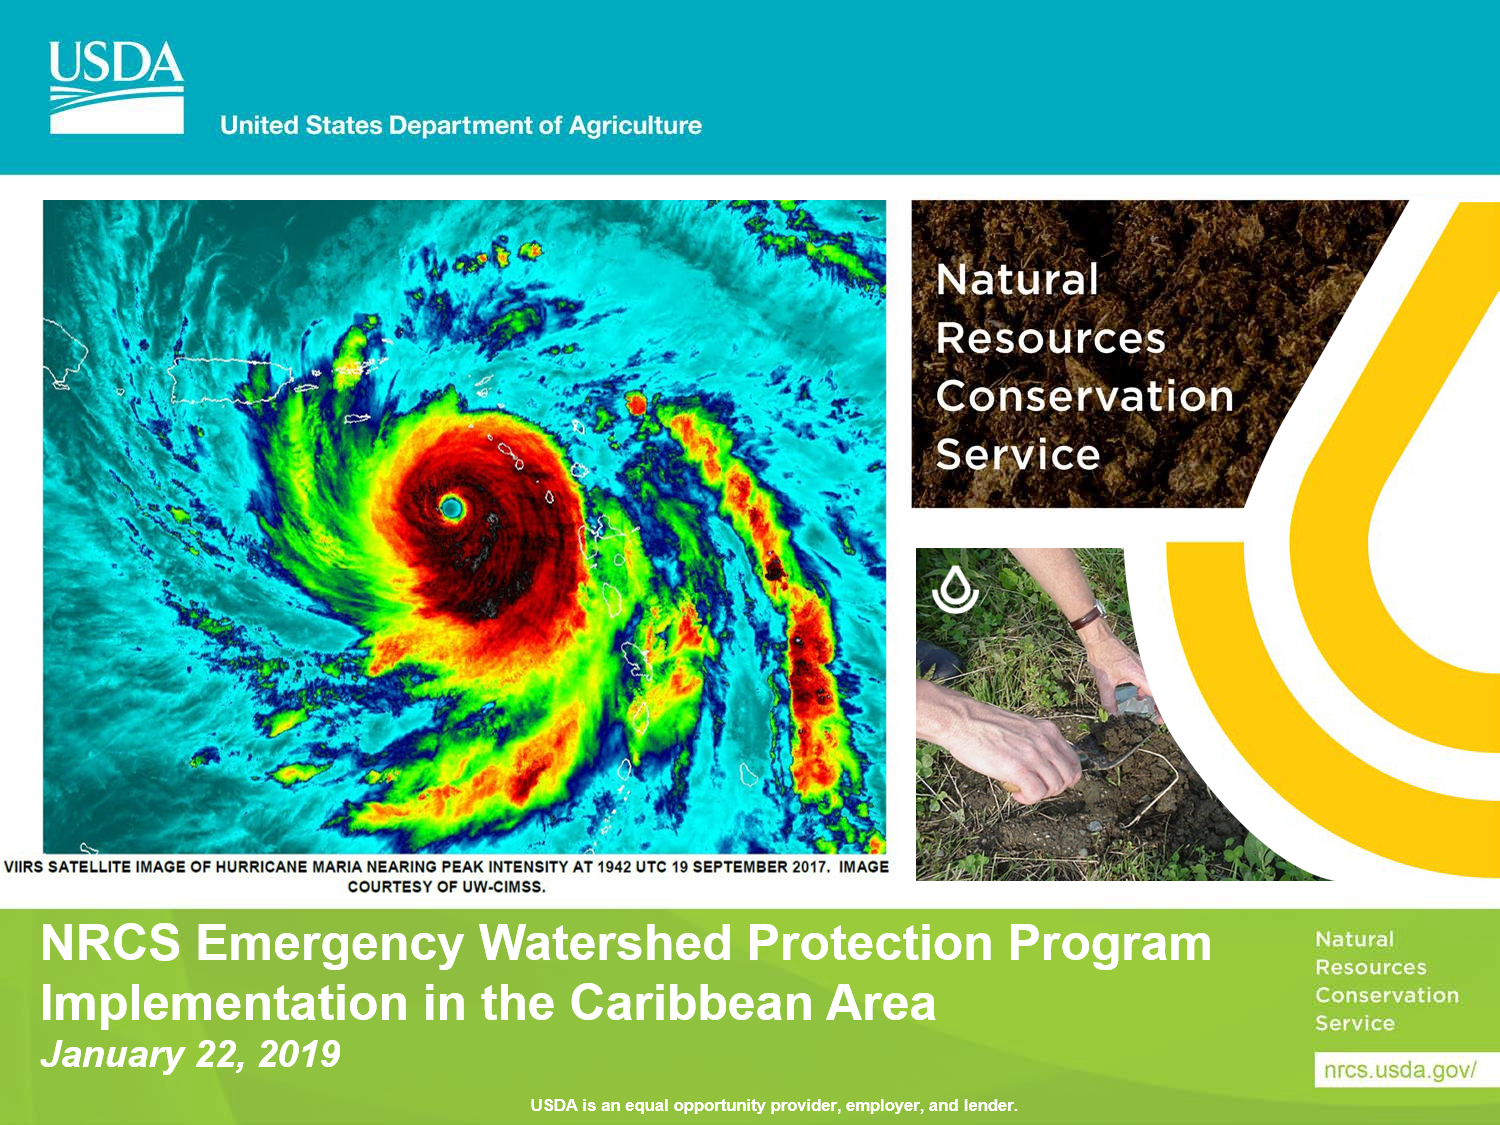 NRCS Emergency Watershed Protection Program Implementation in the Caribbean Area Webinar - satellite image of hurricane María at peak intensity 19 September 2017